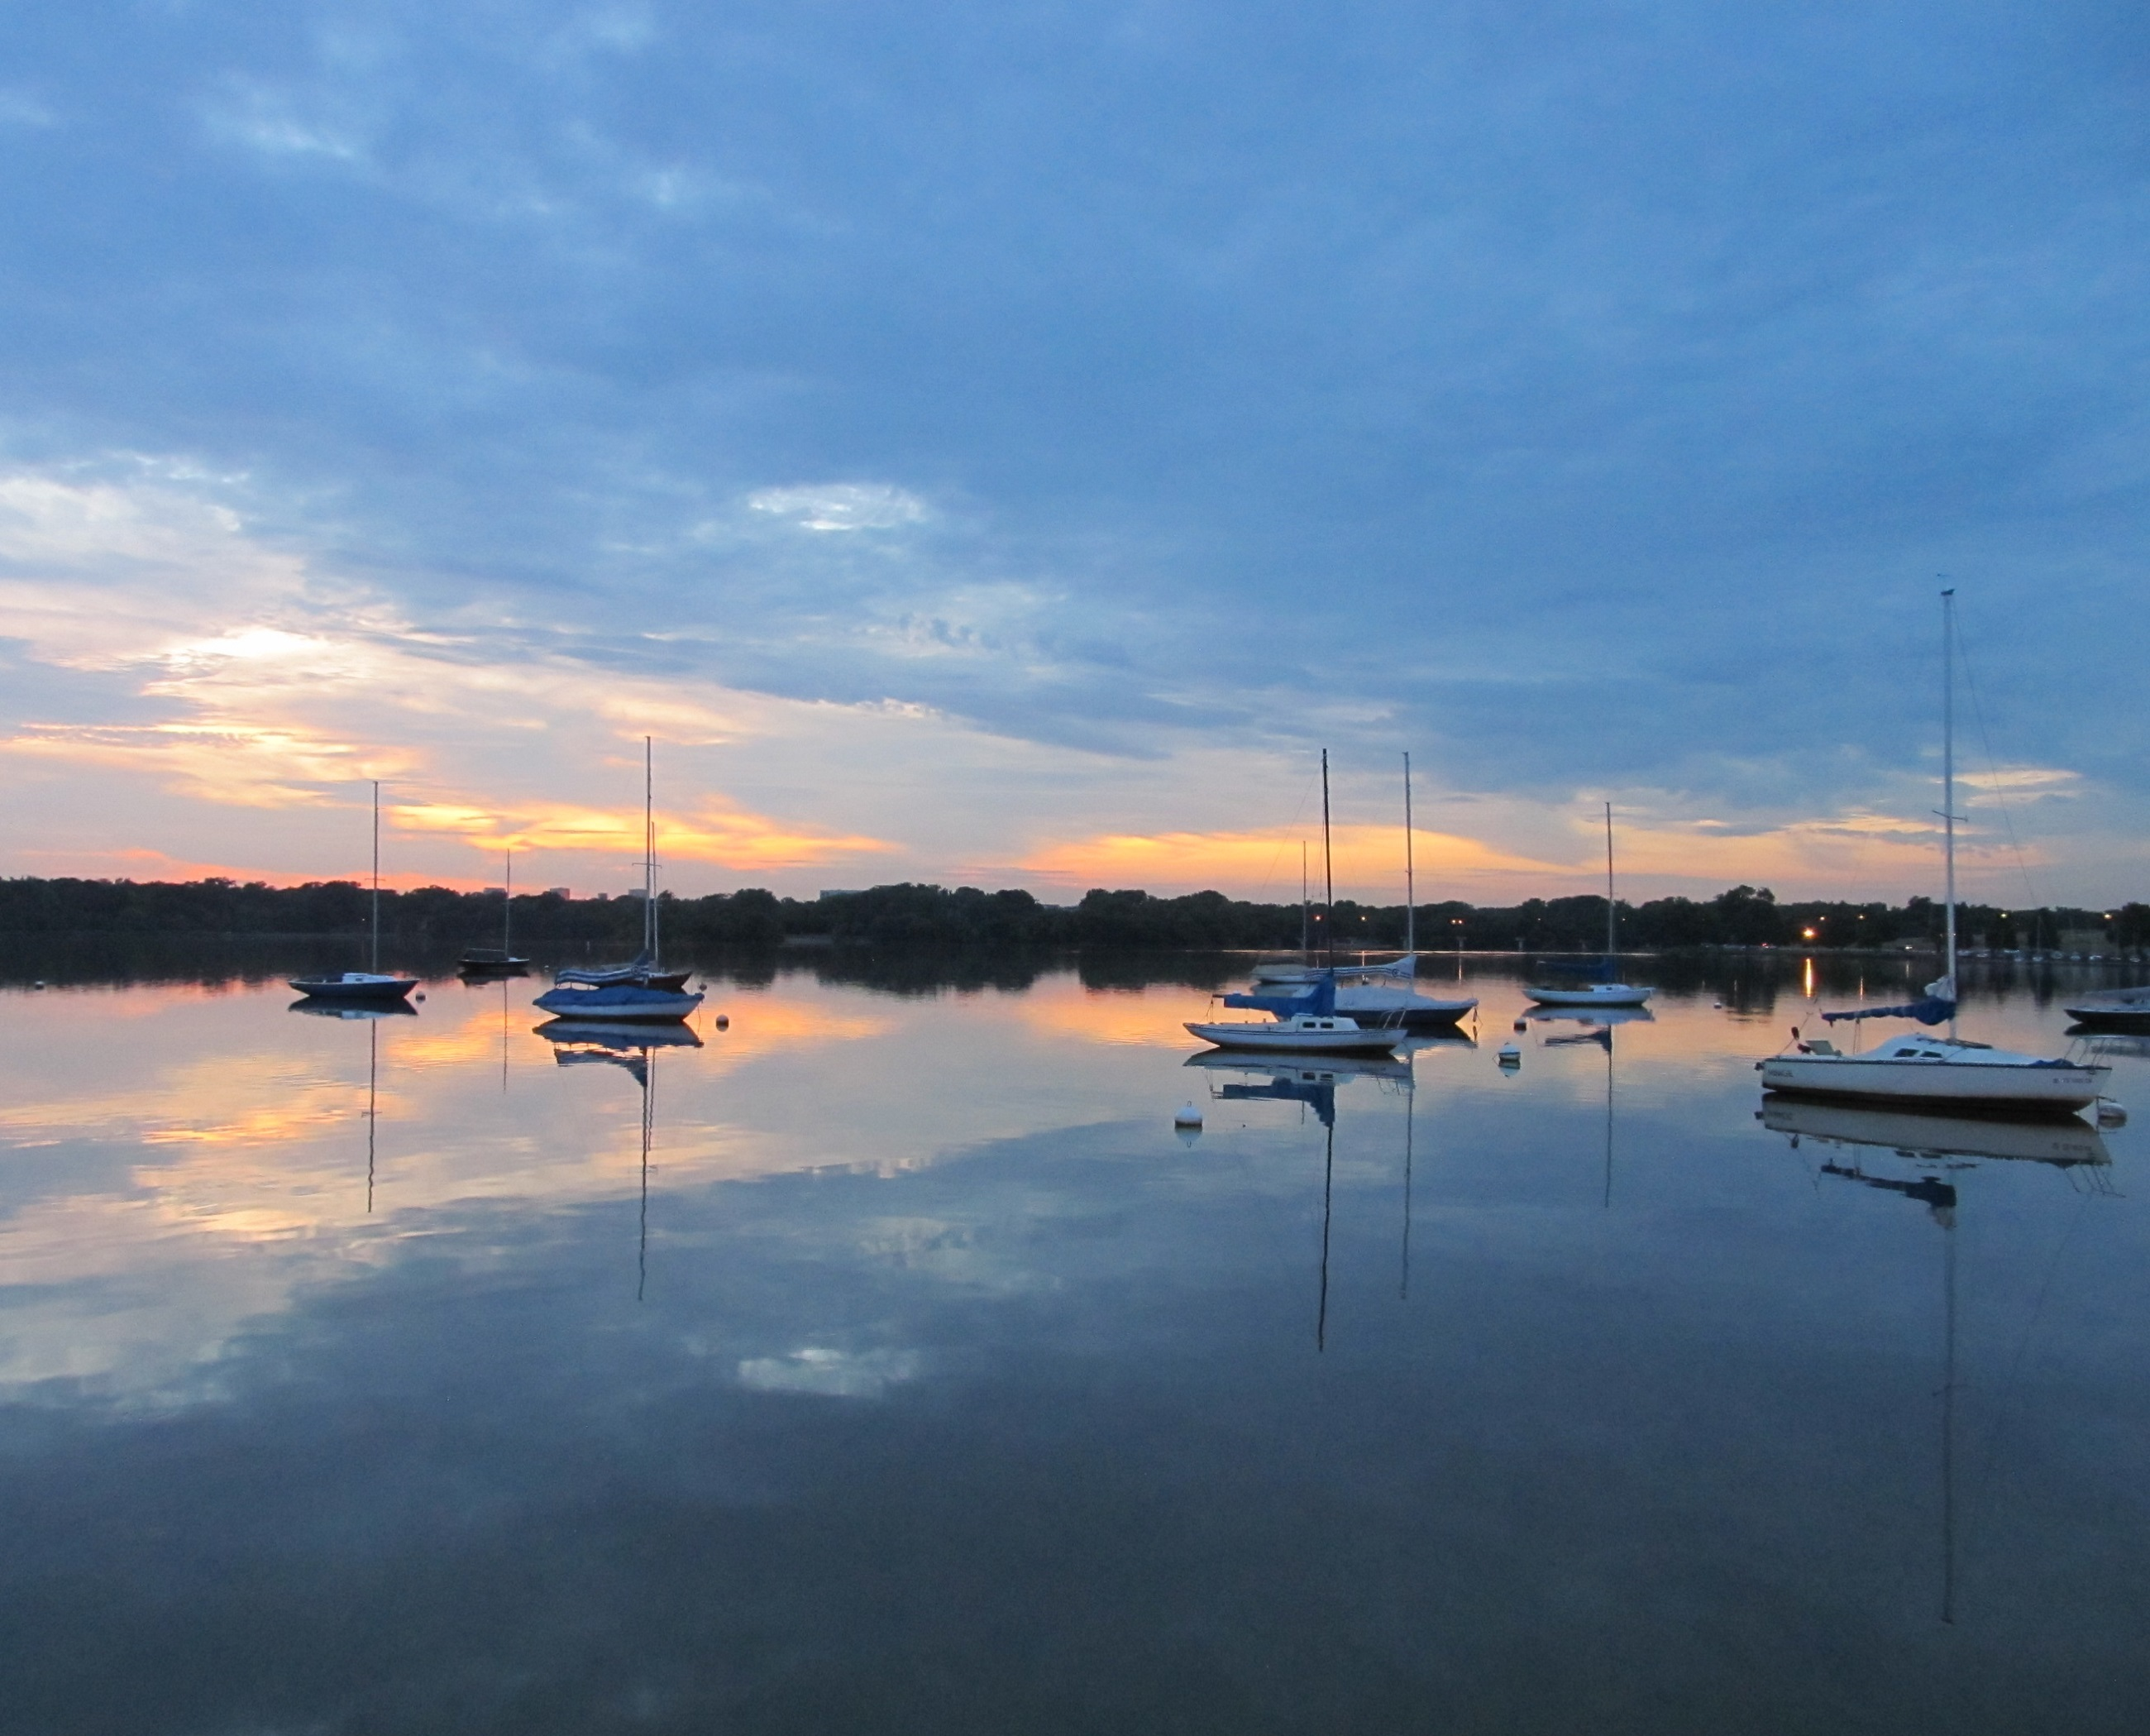 Boats In Water, Boats, Nature, River, Sea, HQ Photo